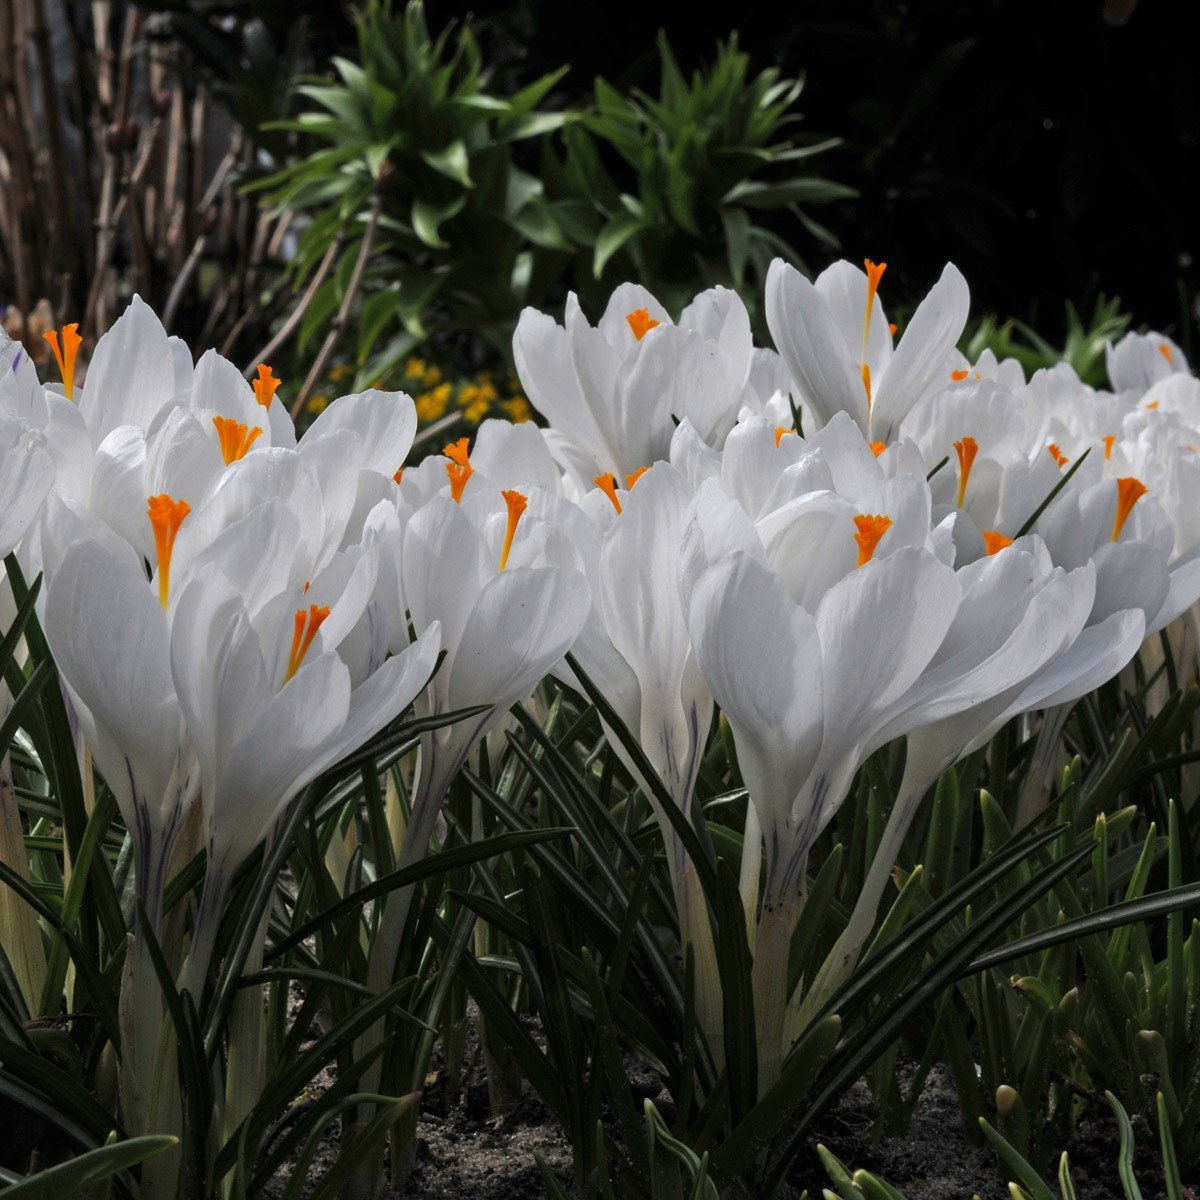 Humphreys Garden White Crocus Joan of Arc x 100 Bulbs Size 6/7 Humphreys Garden®